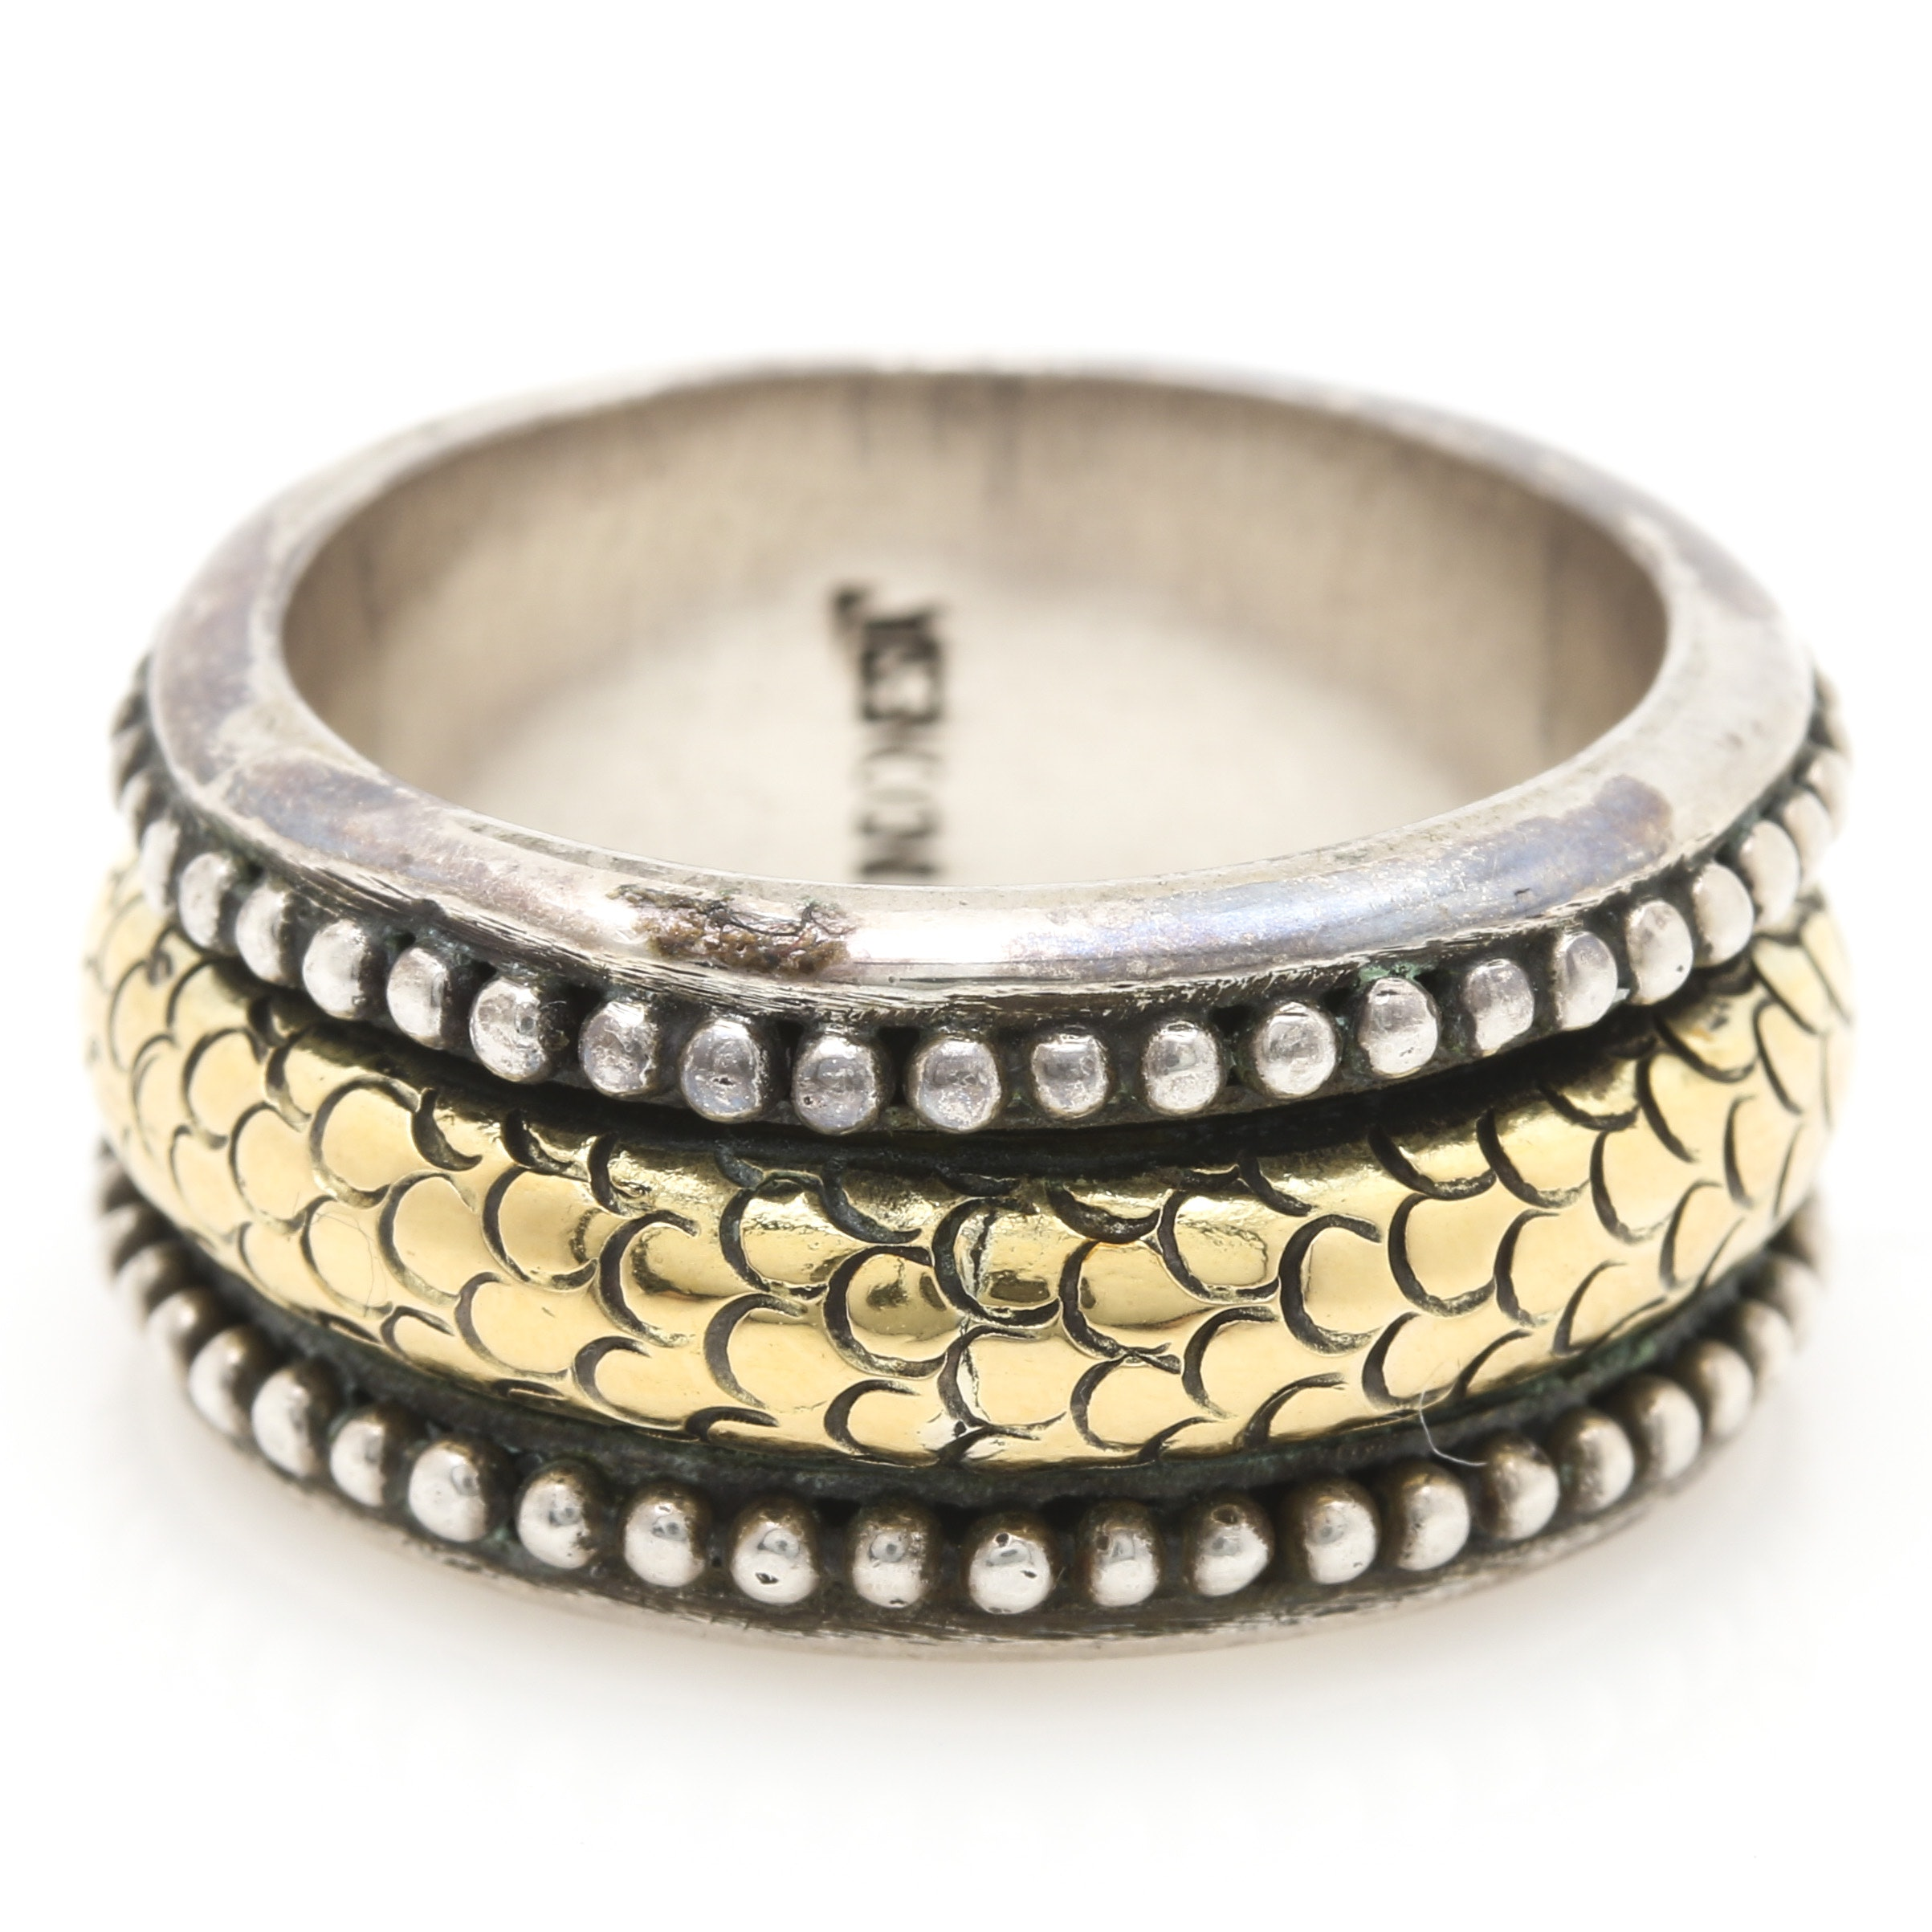 John Hardy Sterling Silver and 18K Yellow Gold Articulated Ring